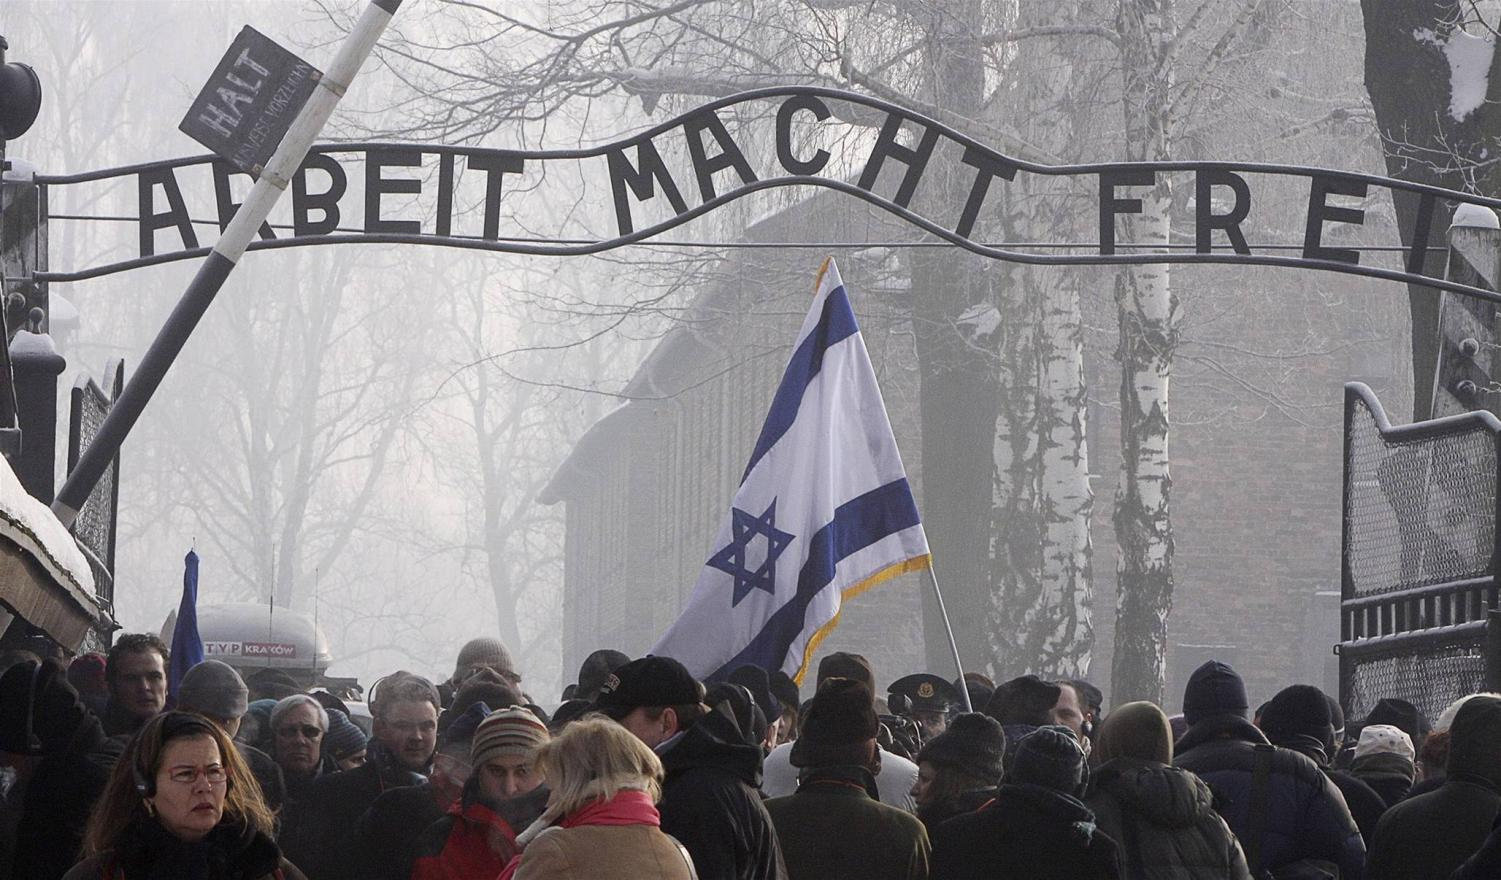 The Nazi death camps now stand as a morbid reminder of the more than 6 million tragic deaths of the Holocaust.